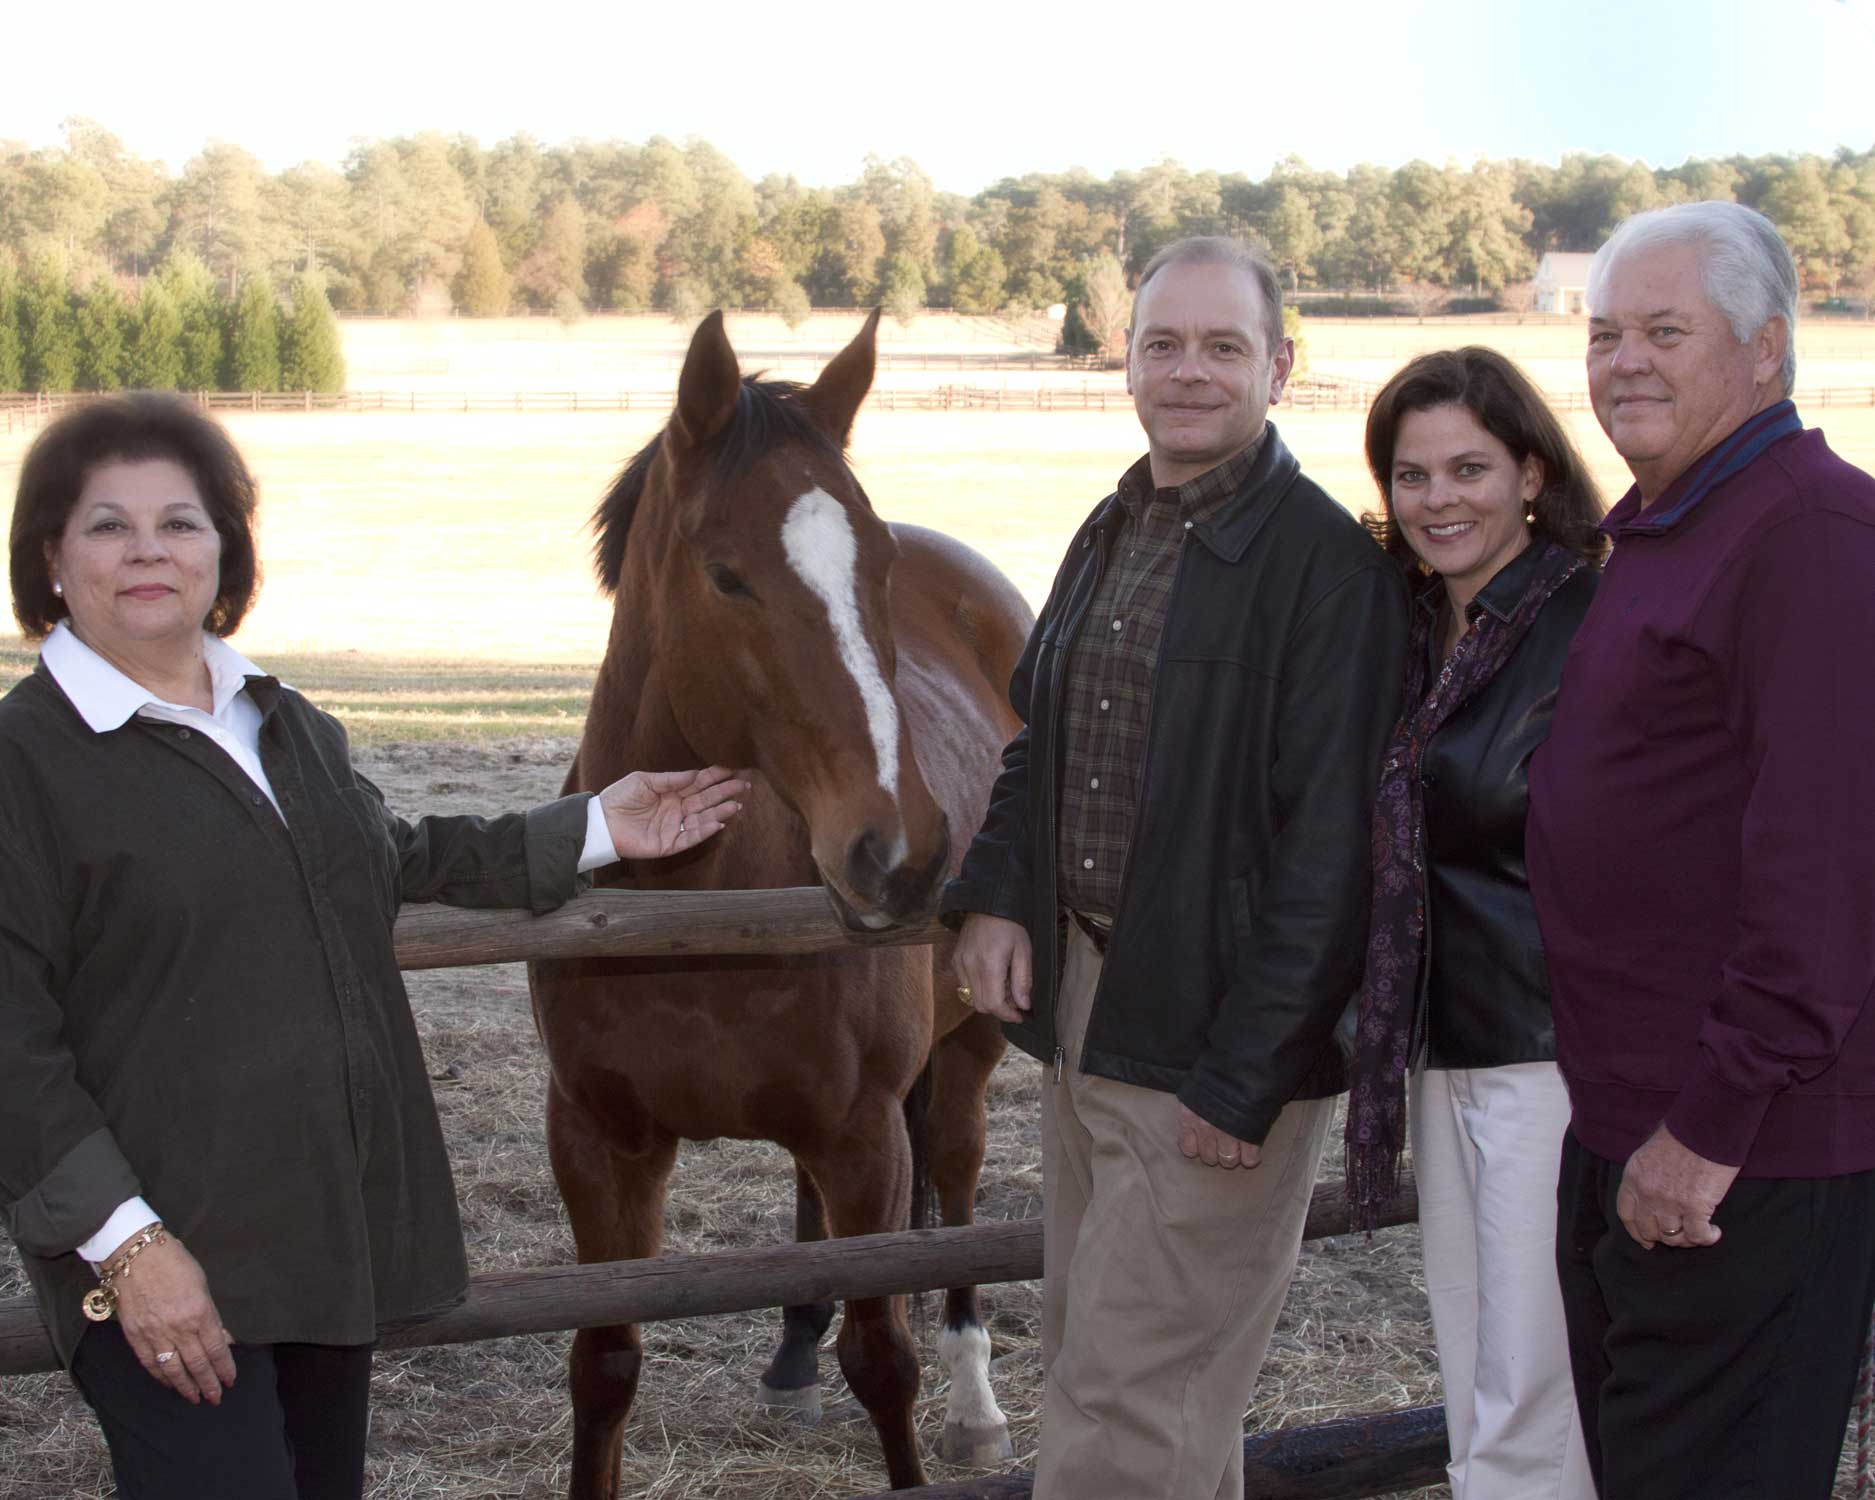 With Fay's parents visiting our horse, Tango